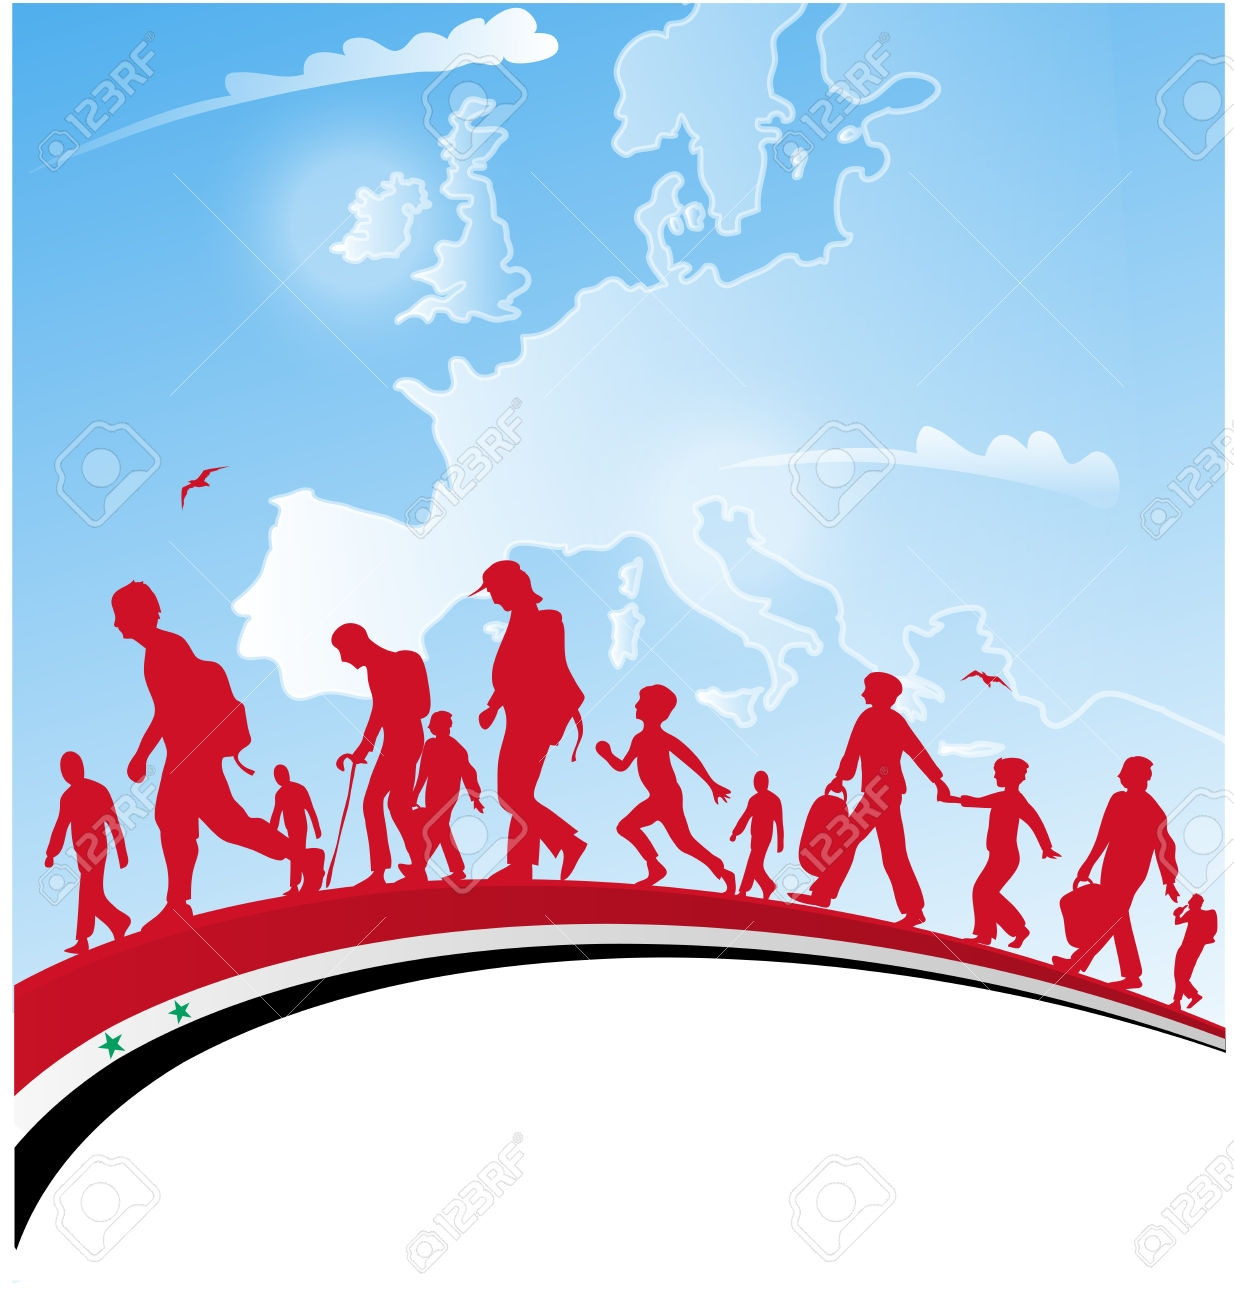 Migration of people clipart 6 » Clipart Station.